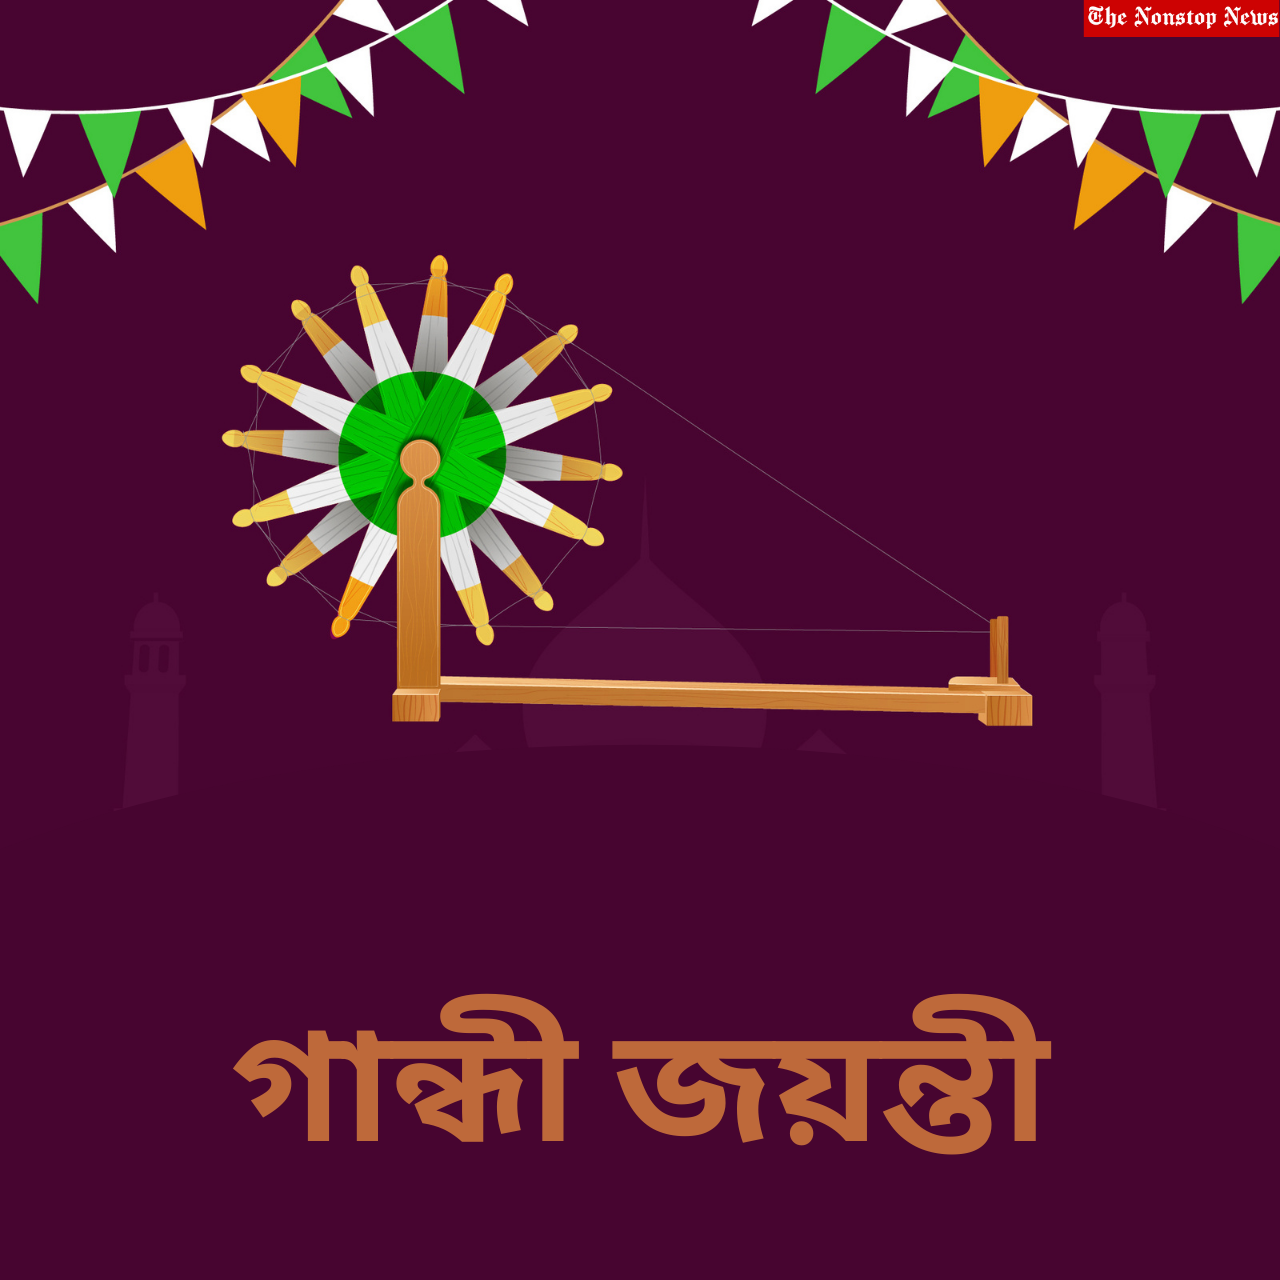 Gandhi Jayanti 2021 Bengali Wishes, Quotes, Messages, Wishes, Greetings, and HD Images to share